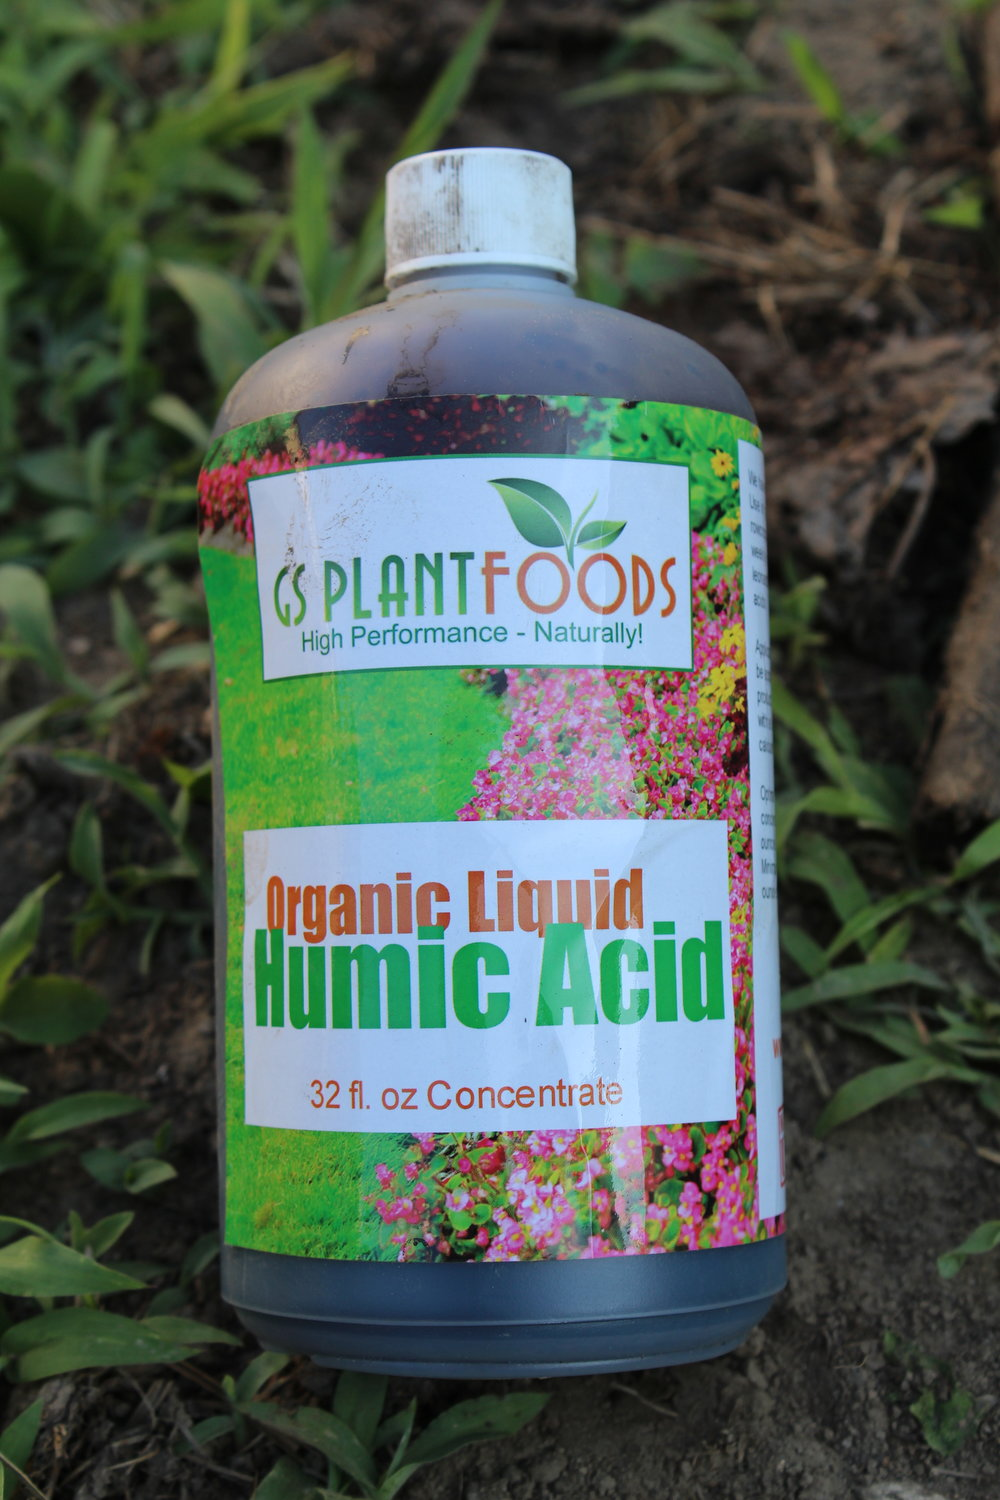 Organic liquid humic acid